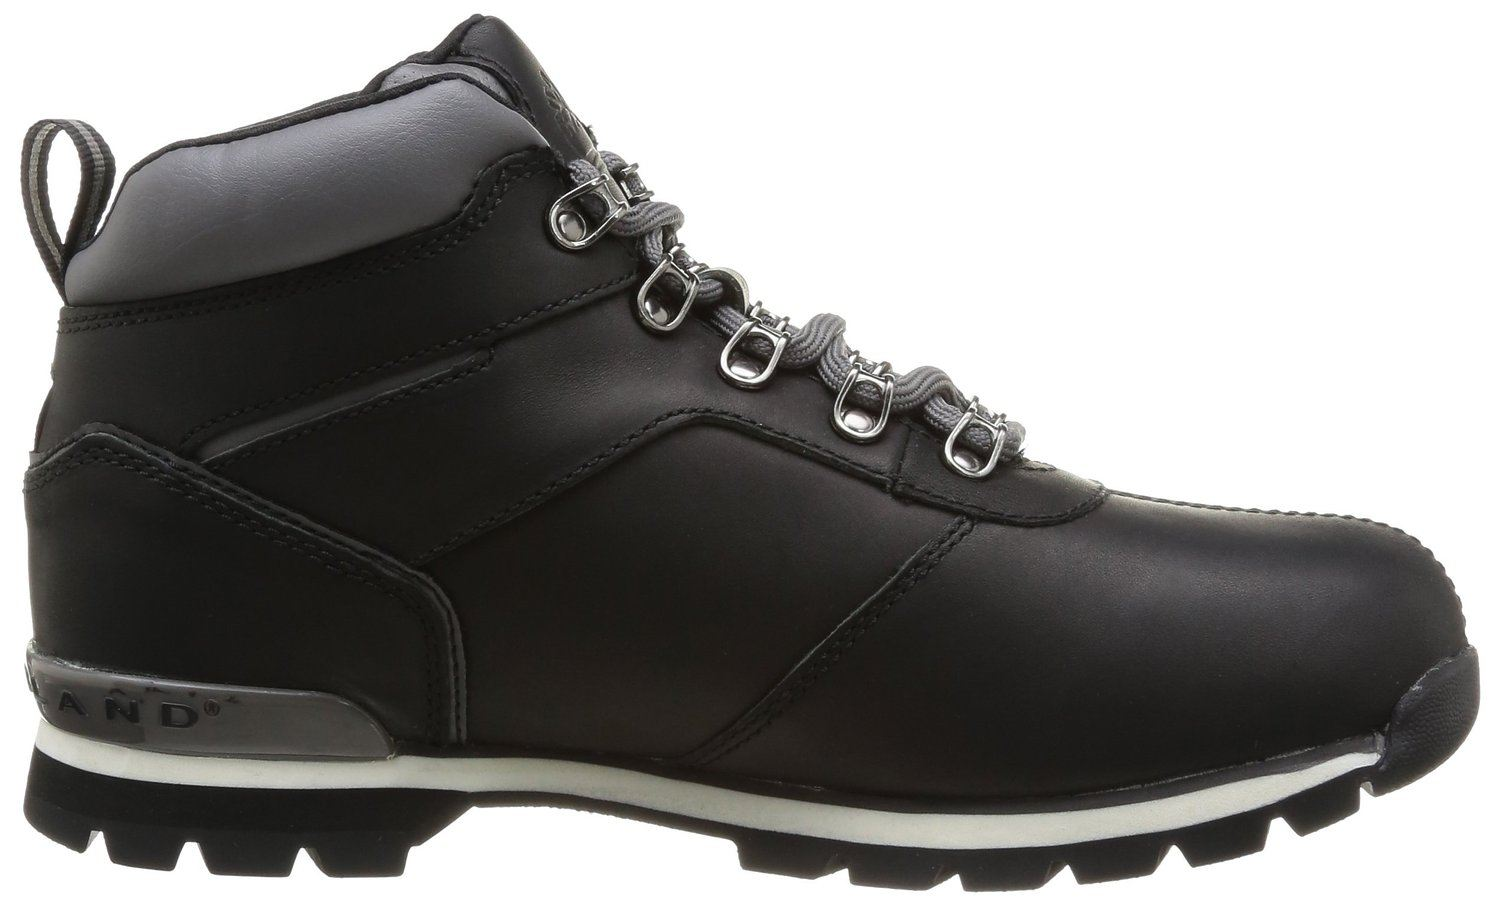 SPLITROCK 2 HIKER BLack MEN'S LEATHER BOOT